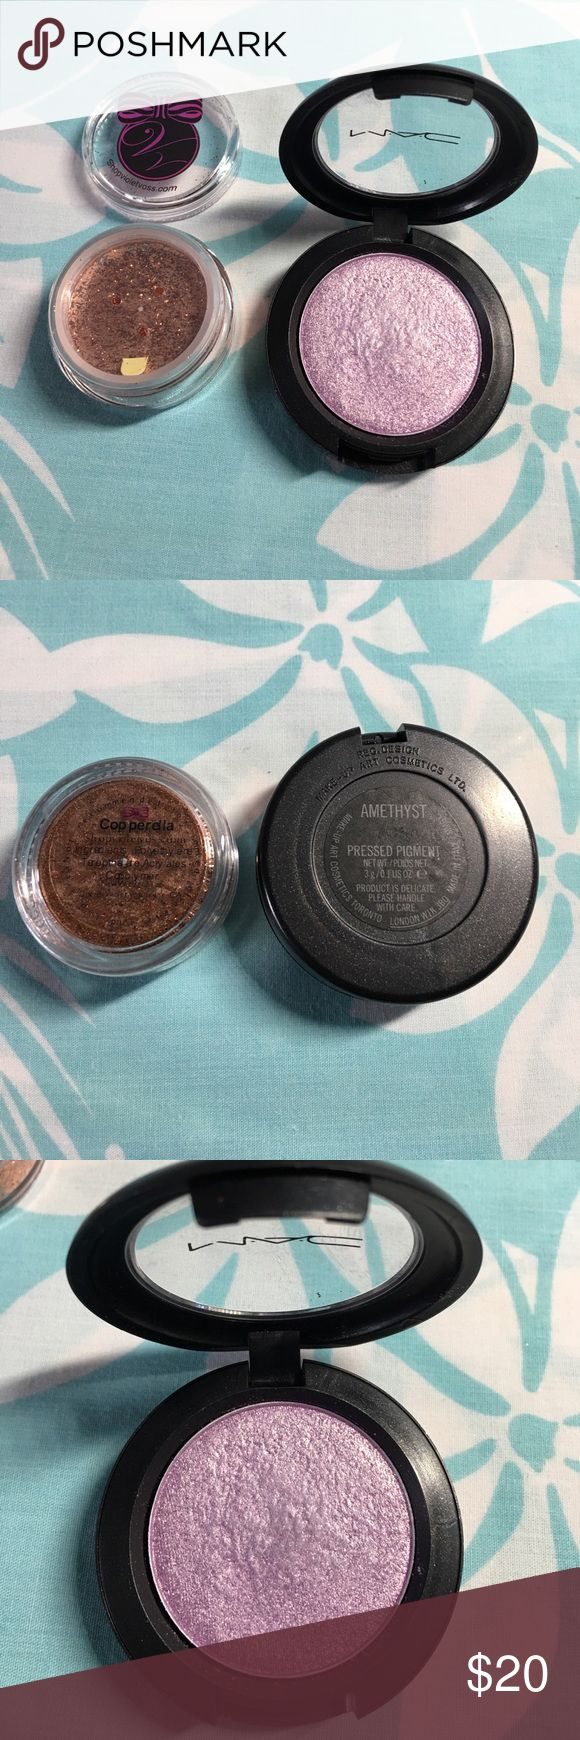 Shop Violet Voss COPPERELLA glitter & MAC AMETHYST Shop Violet Voss COPPERELLA glitter & MAC AMETHYST. Price is for both. Used MAC shadow a few times. Lots of product left. No boxes. MAC Cosmetics Makeup Eyeshadow